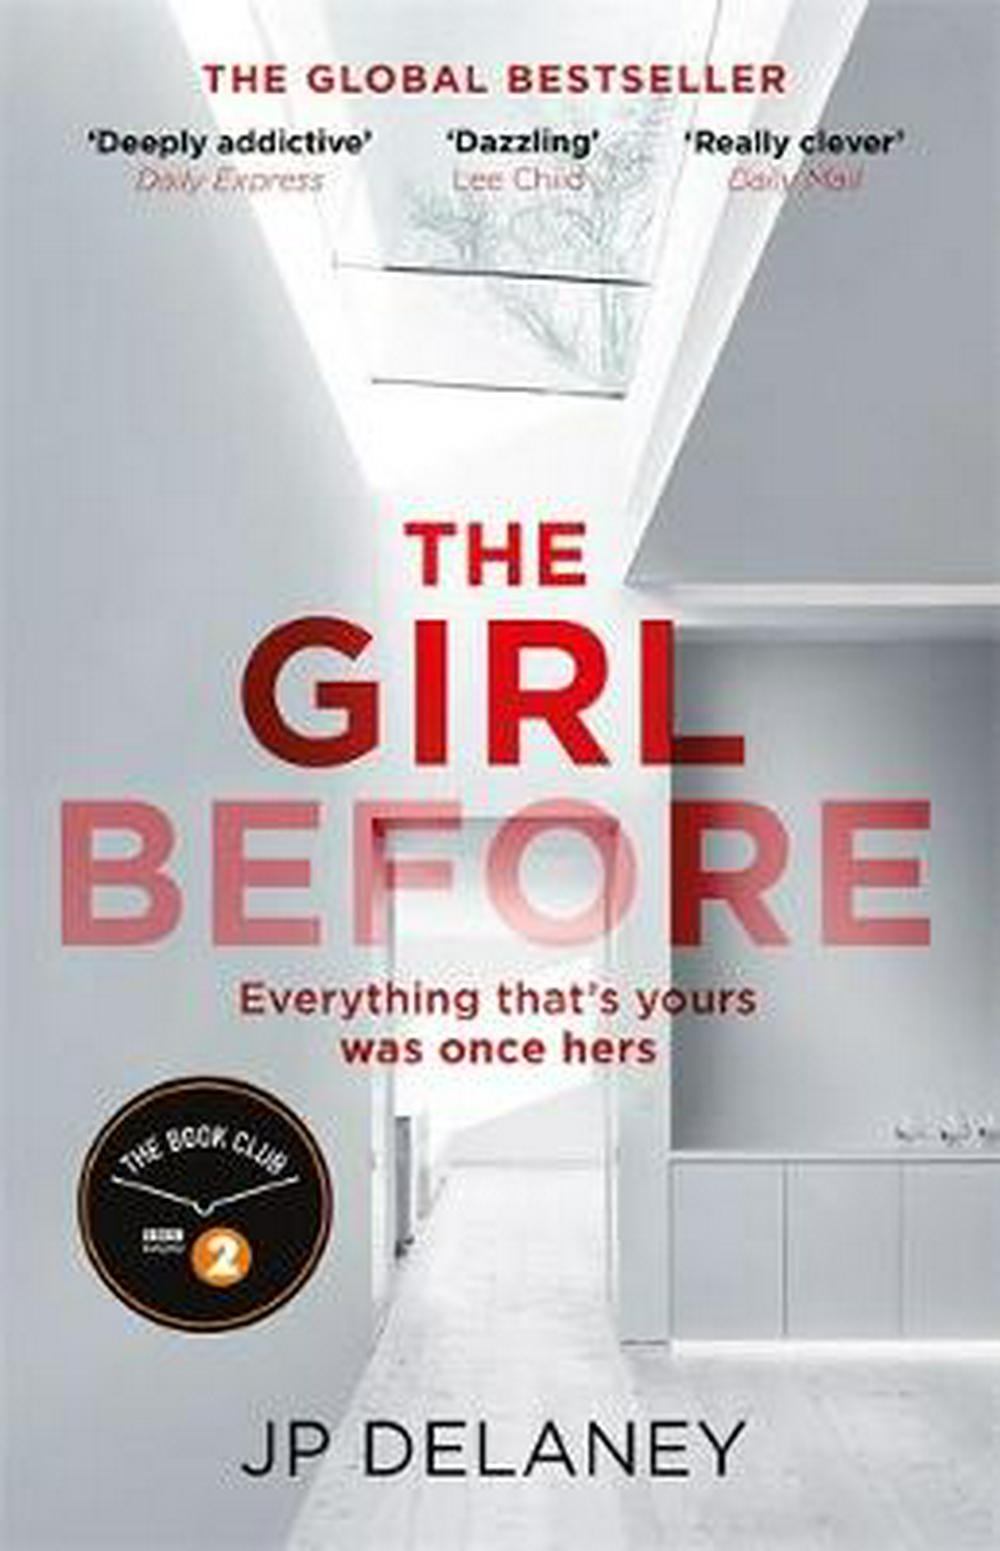 The Girl Before by JP Delaney, ISBN: 9781786480286